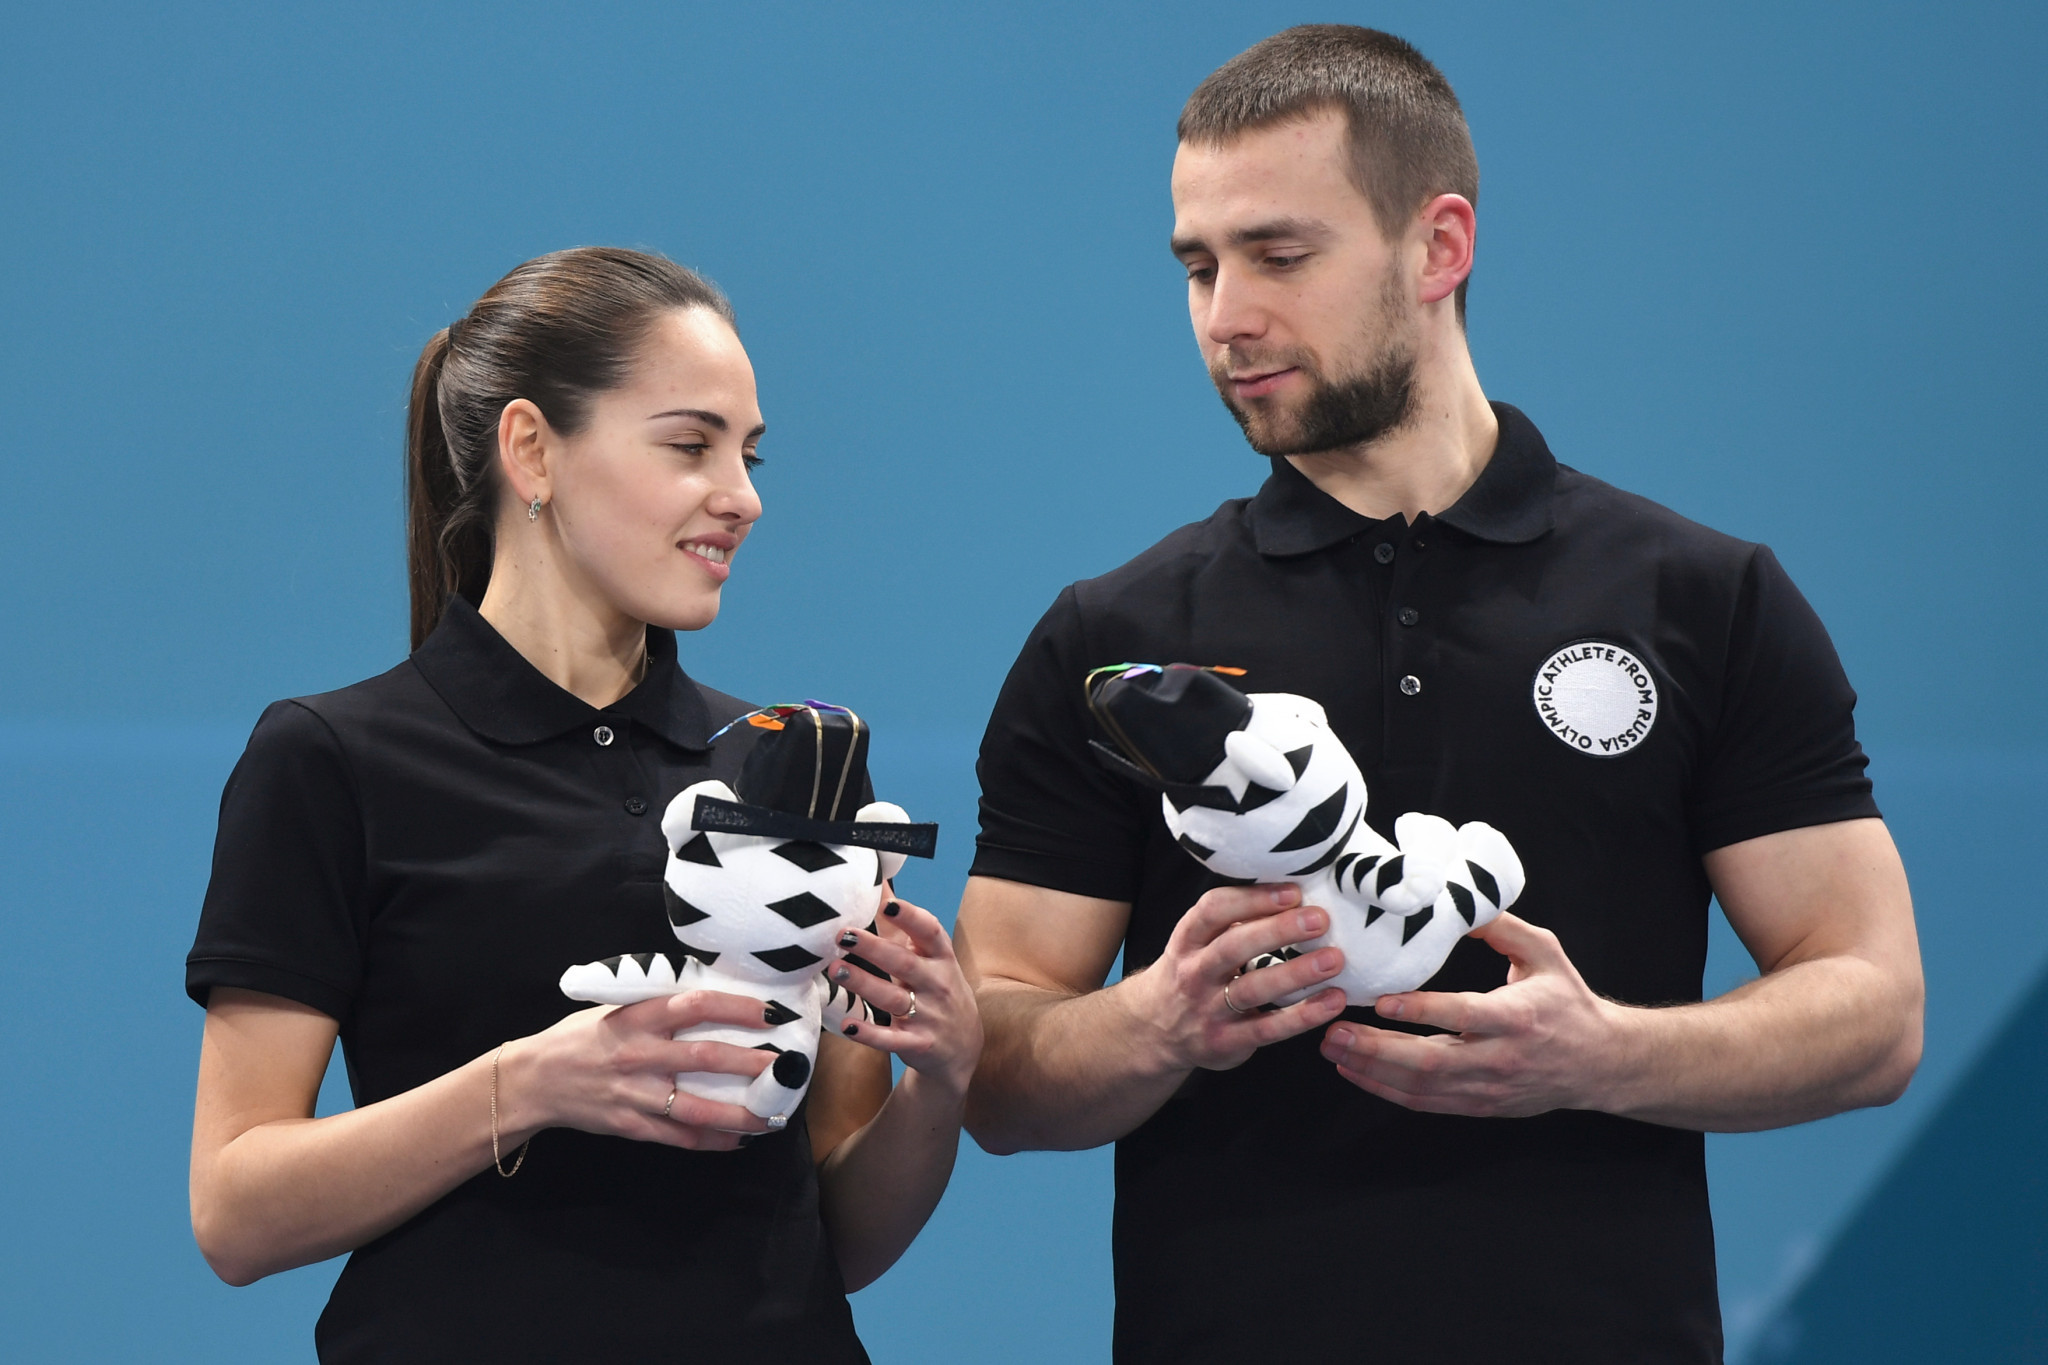 Aleksandr Krushelnitckii's decision to accept his positive drugs test at Pyeongchang 2018 means he and his wife Anastasia Bryzgalova will lose the Olympic bronze medal they won in mixed curling ©Getty Images